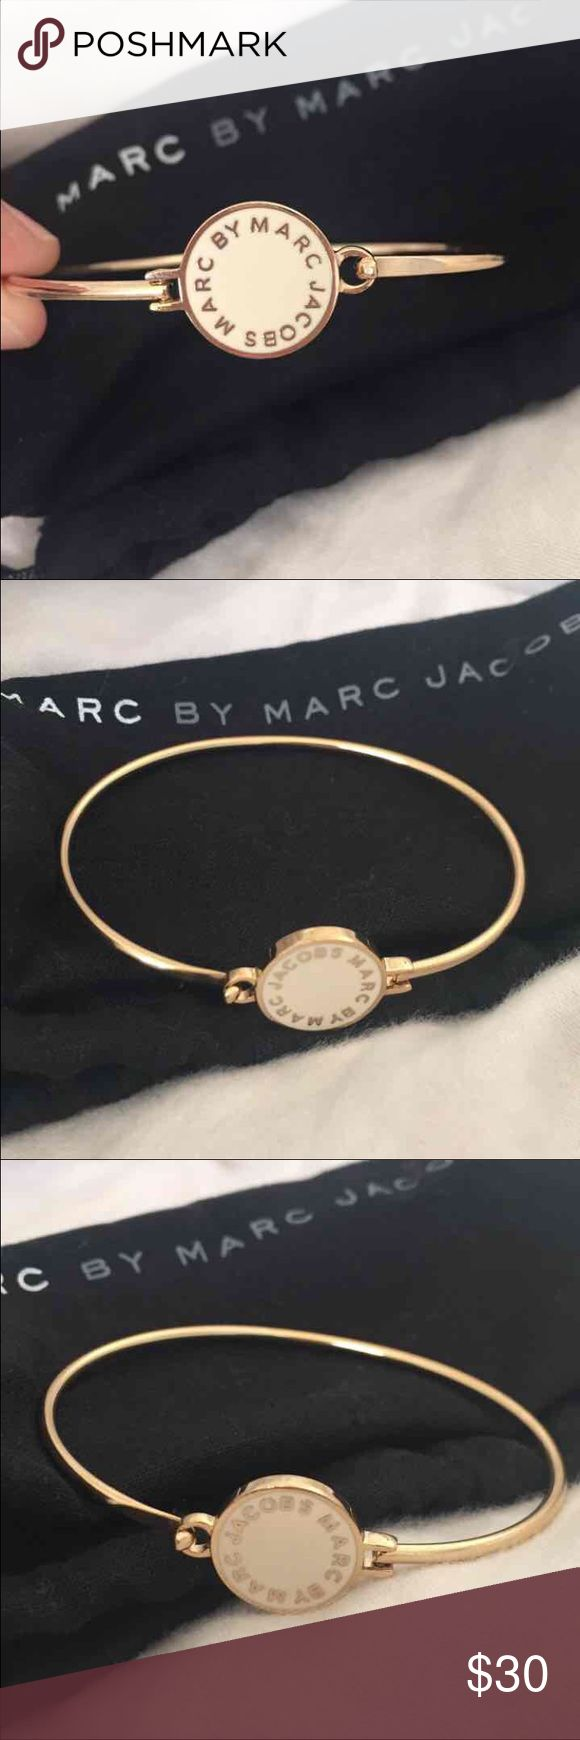 NEW Marc Jacobs bracelet BRAND NEW- I took off the tag to prevent the sticky tag material from sticking. Beautiful Marc Jacobs bracelet from Nordstrom; received as a gift but I already have same thing in another color. Comes with dust bag!! Makes a great Christmas present. Marc Jacobs Jewelry Bracelets